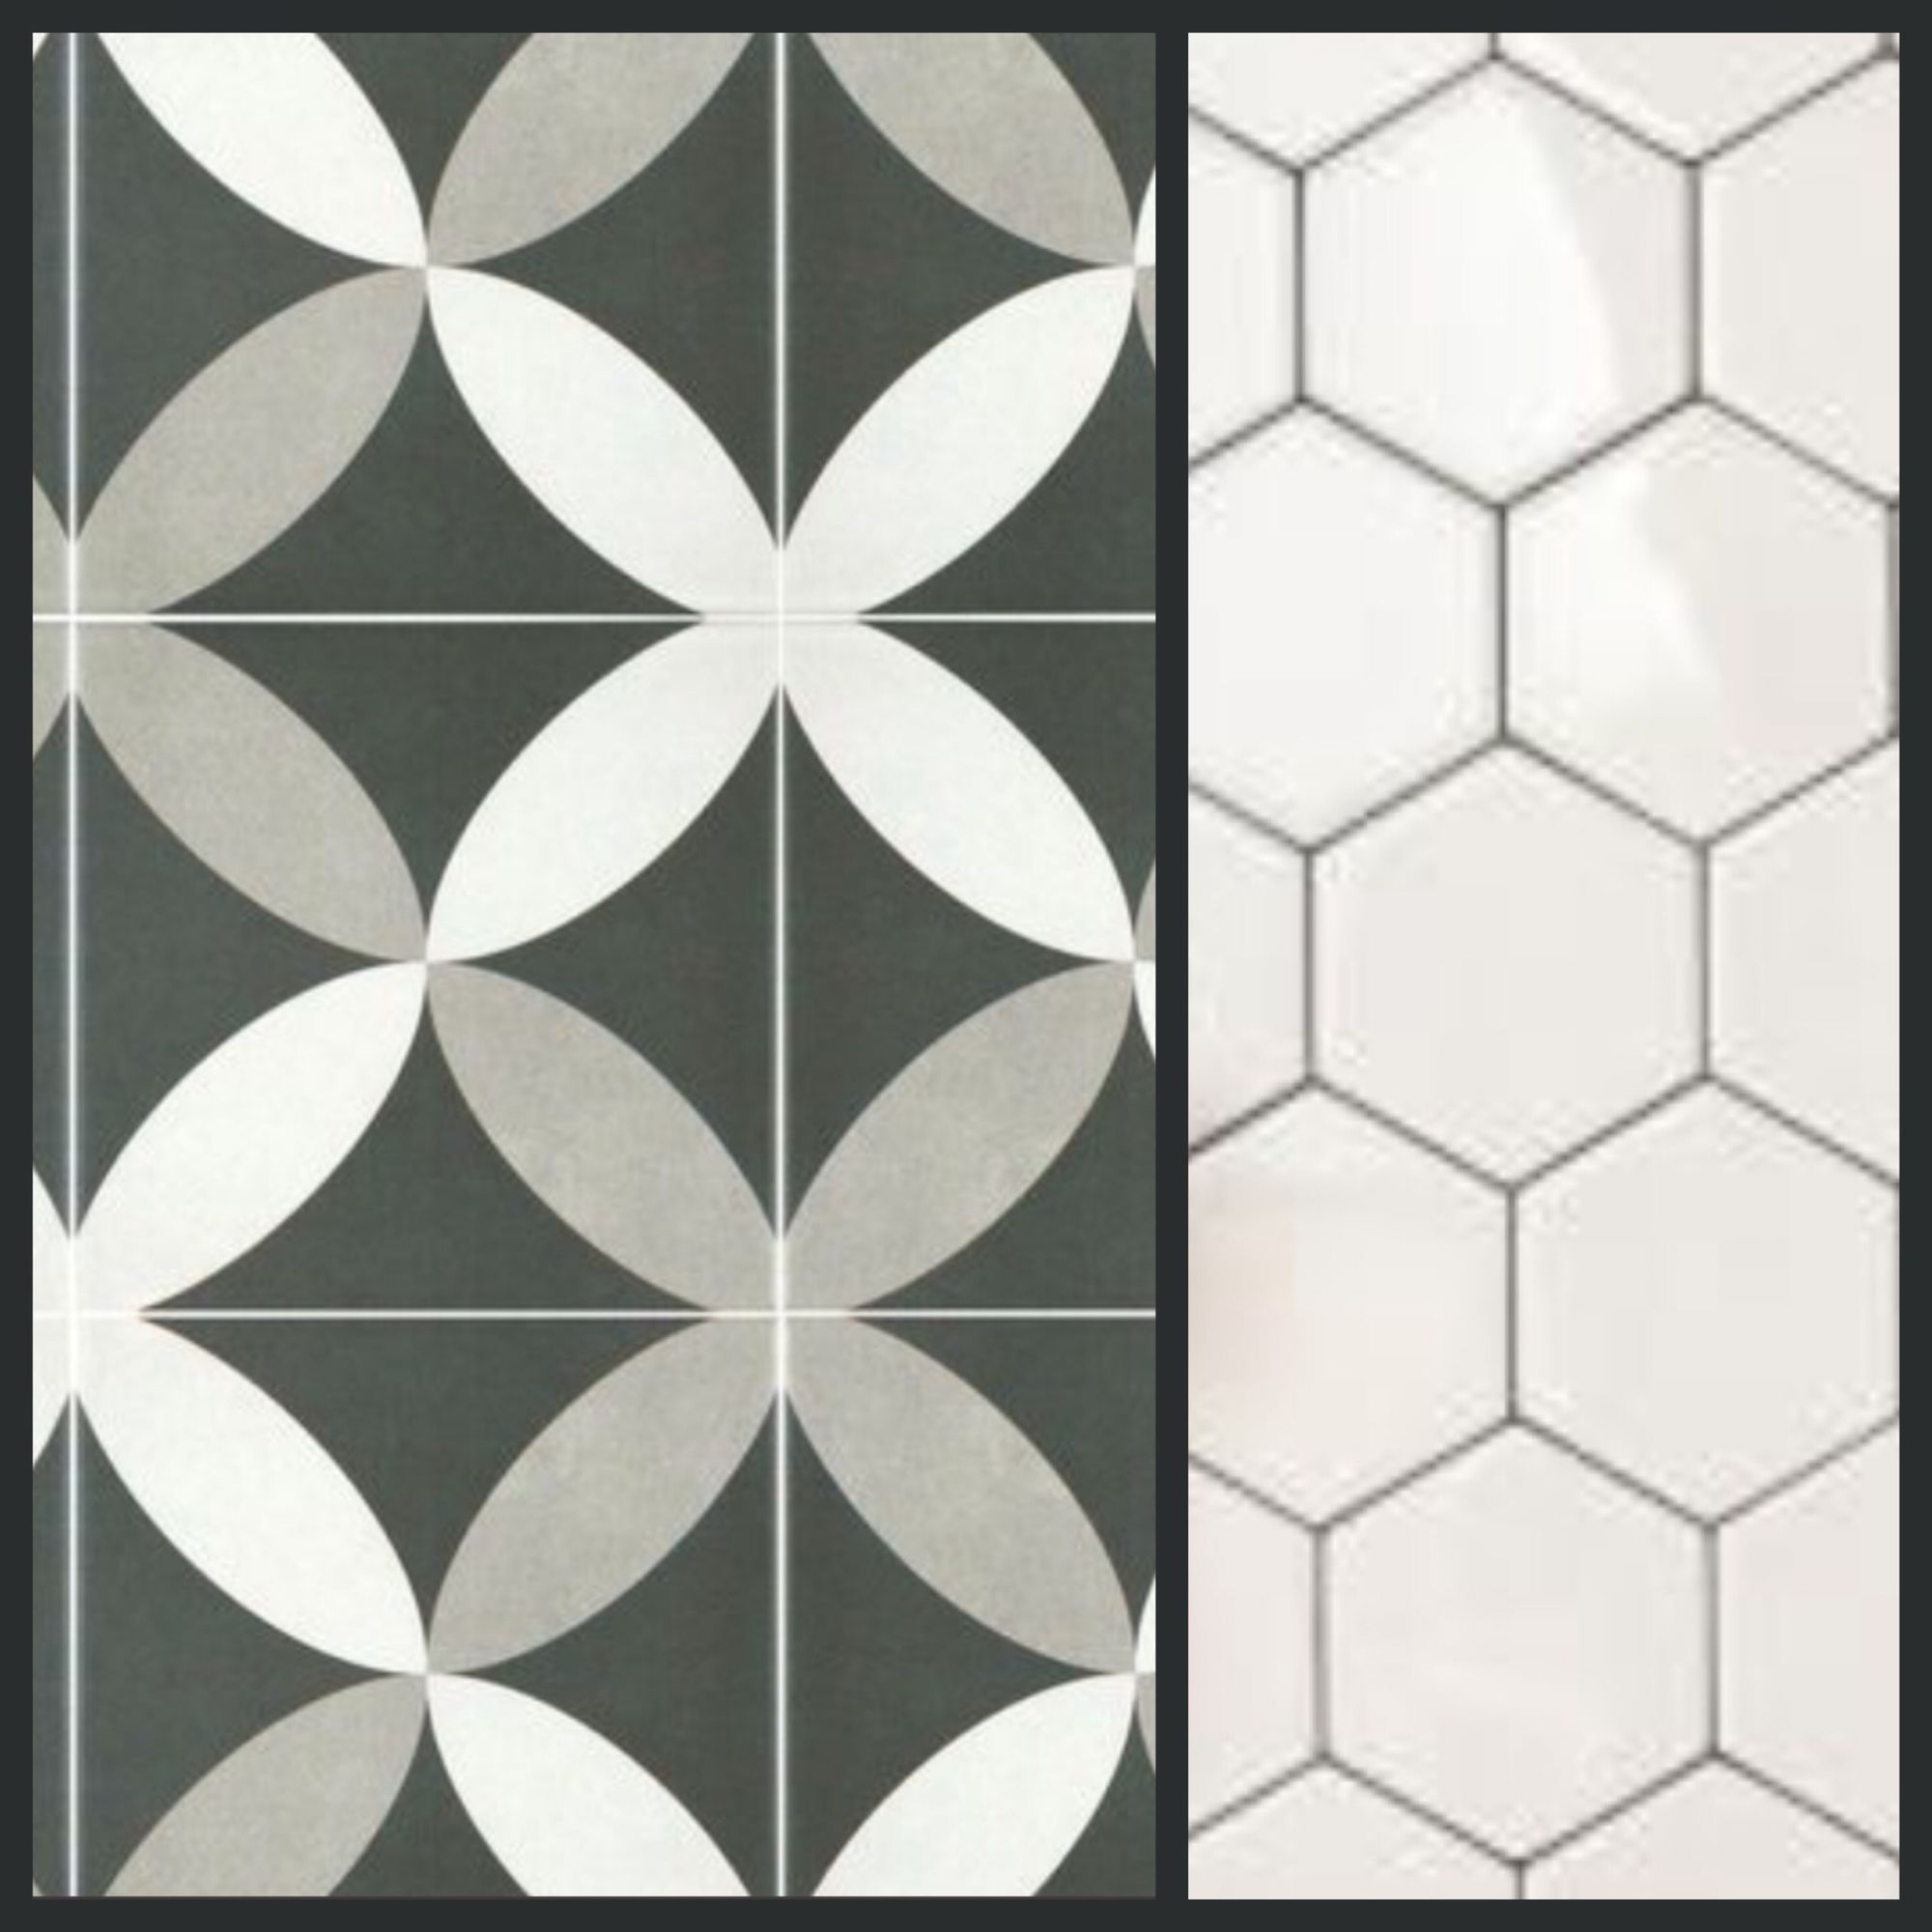 Tile combo for kitchen backsplash 775 inch matte petal pattern tile combo for kitchen backsplash 775 inch matte petal pattern ceramic square tile 550 sqft for above the sink 4 inch gloss white hexagon tile dailygadgetfo Image collections